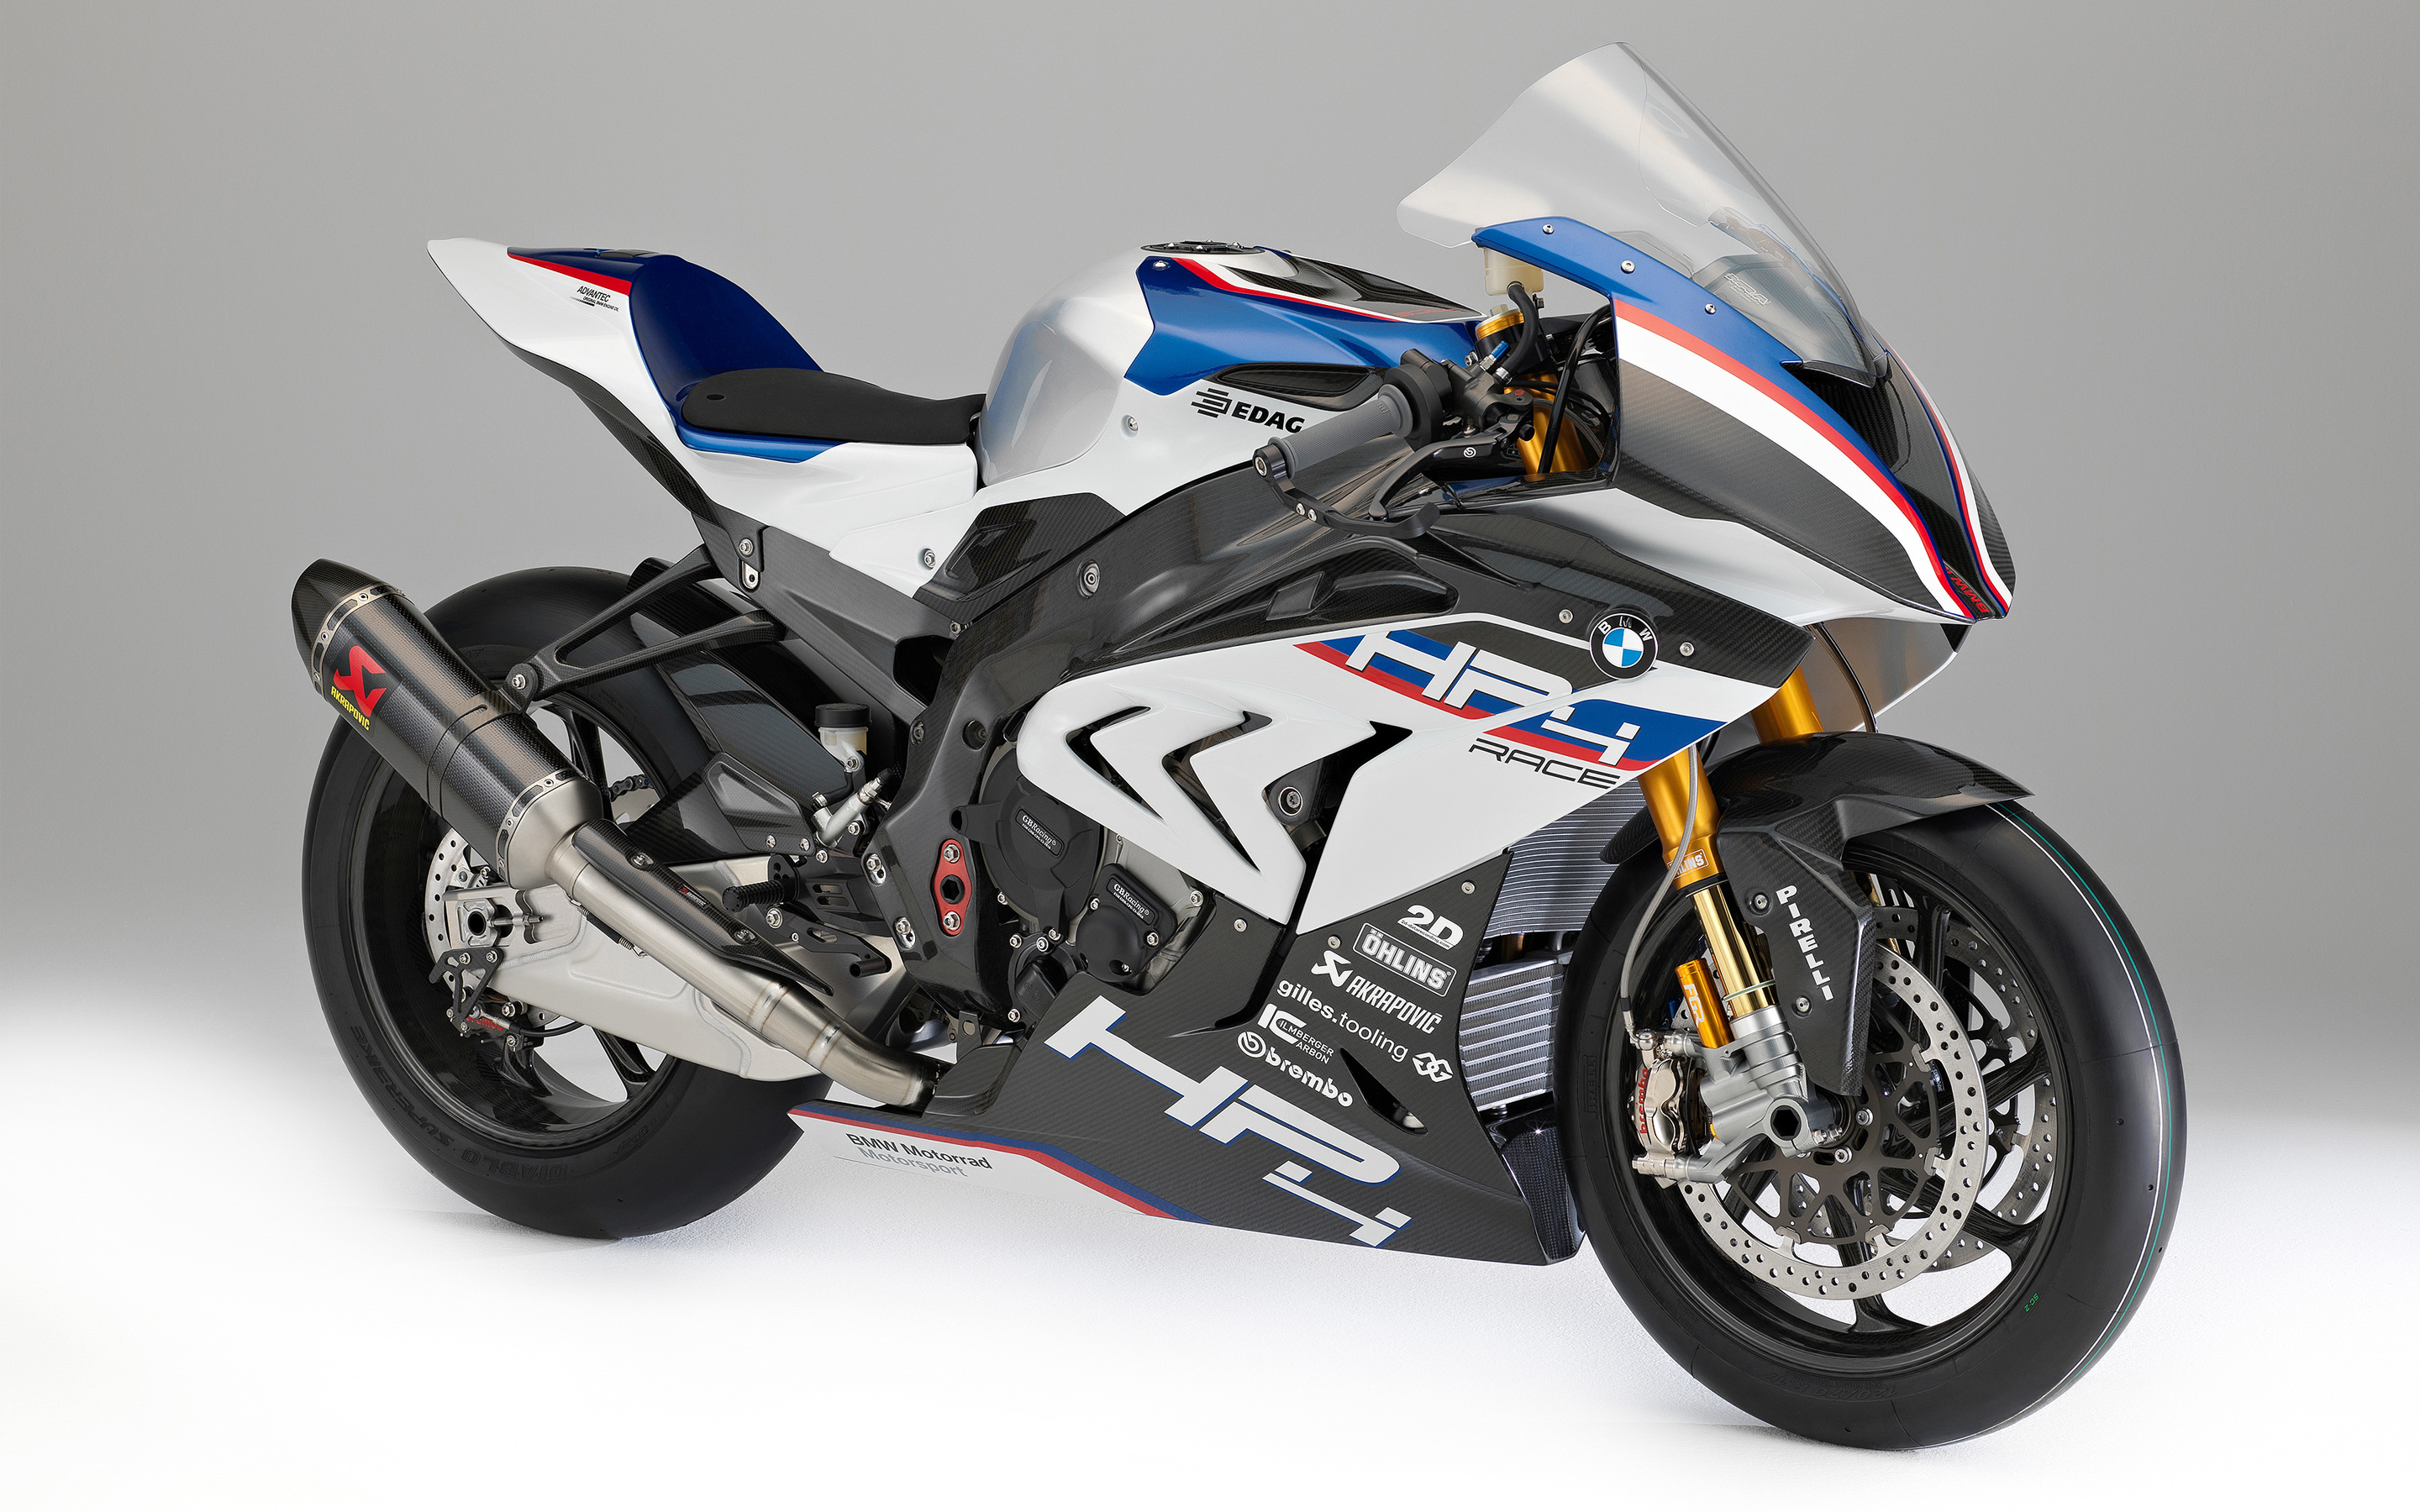 Bmw Hp4 Bike Wallpaper 61259 2880x1800px